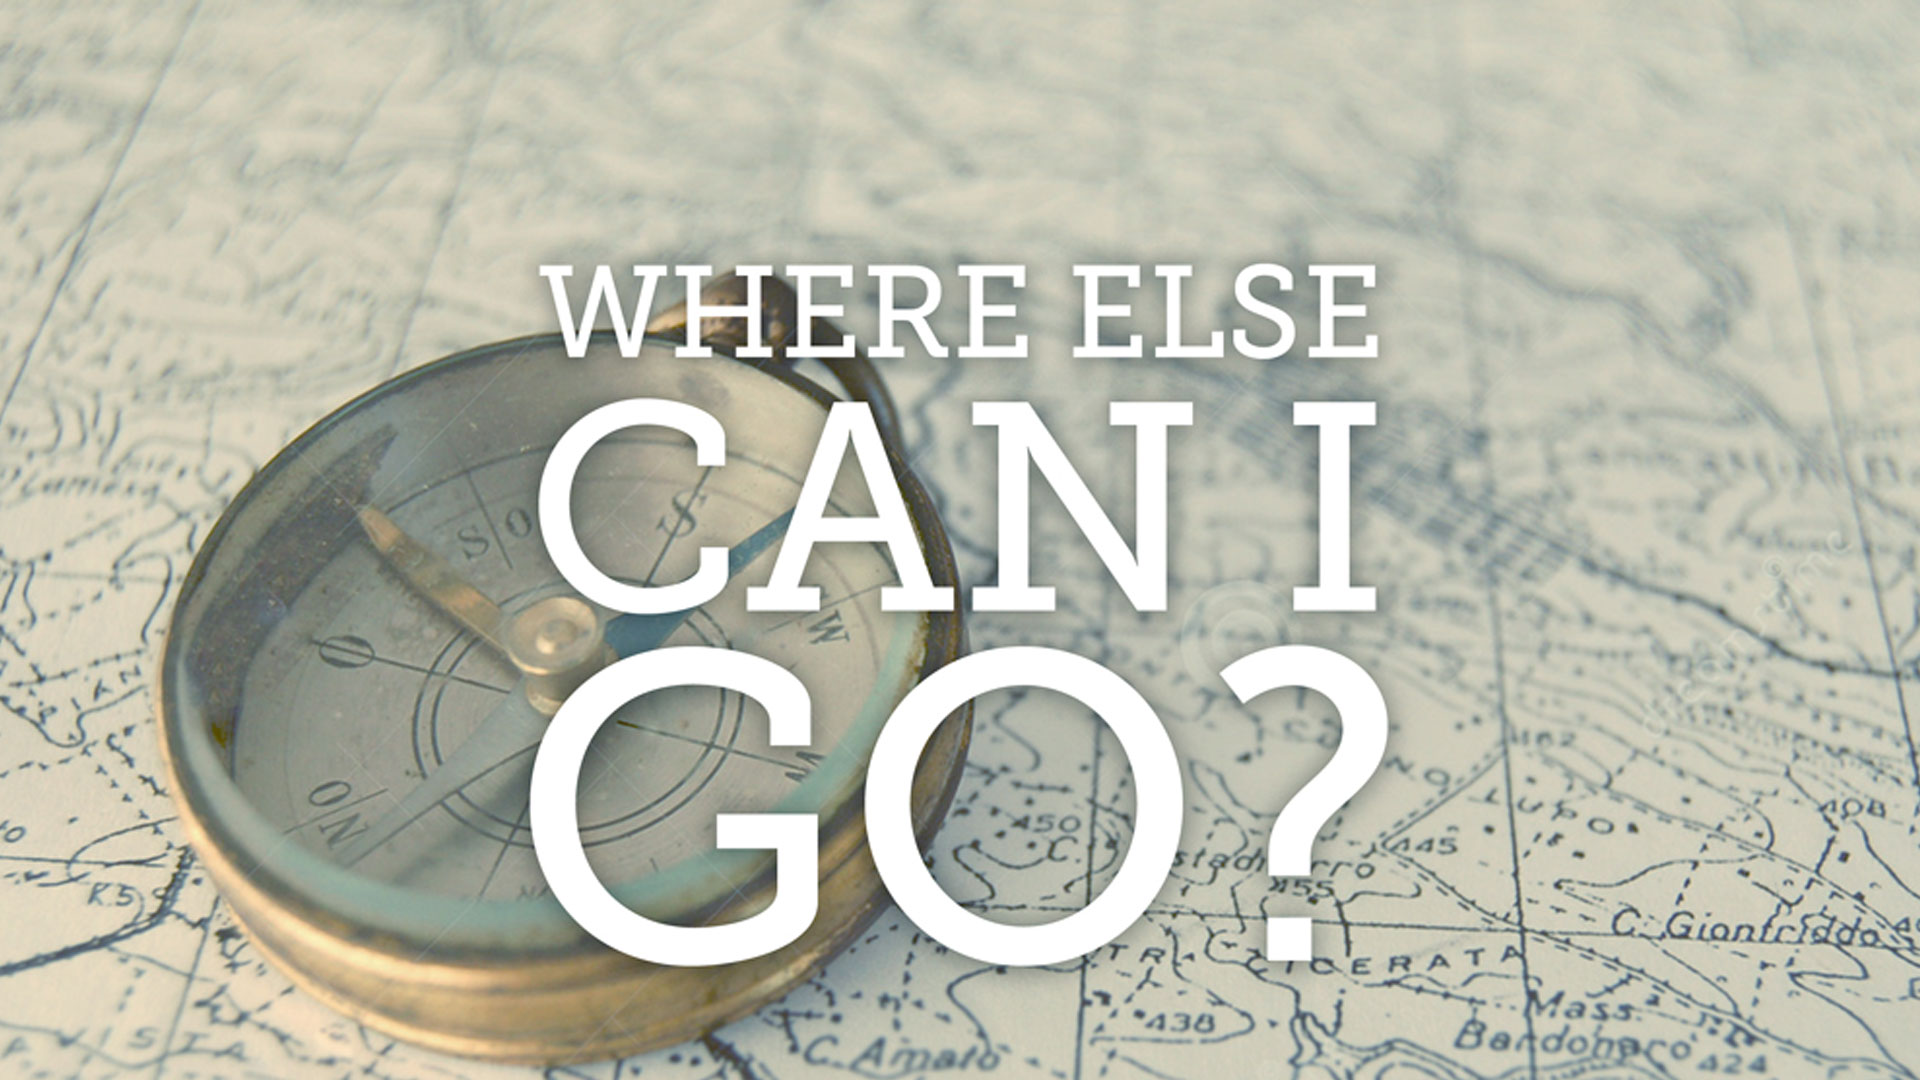 Where-else-i-can-go